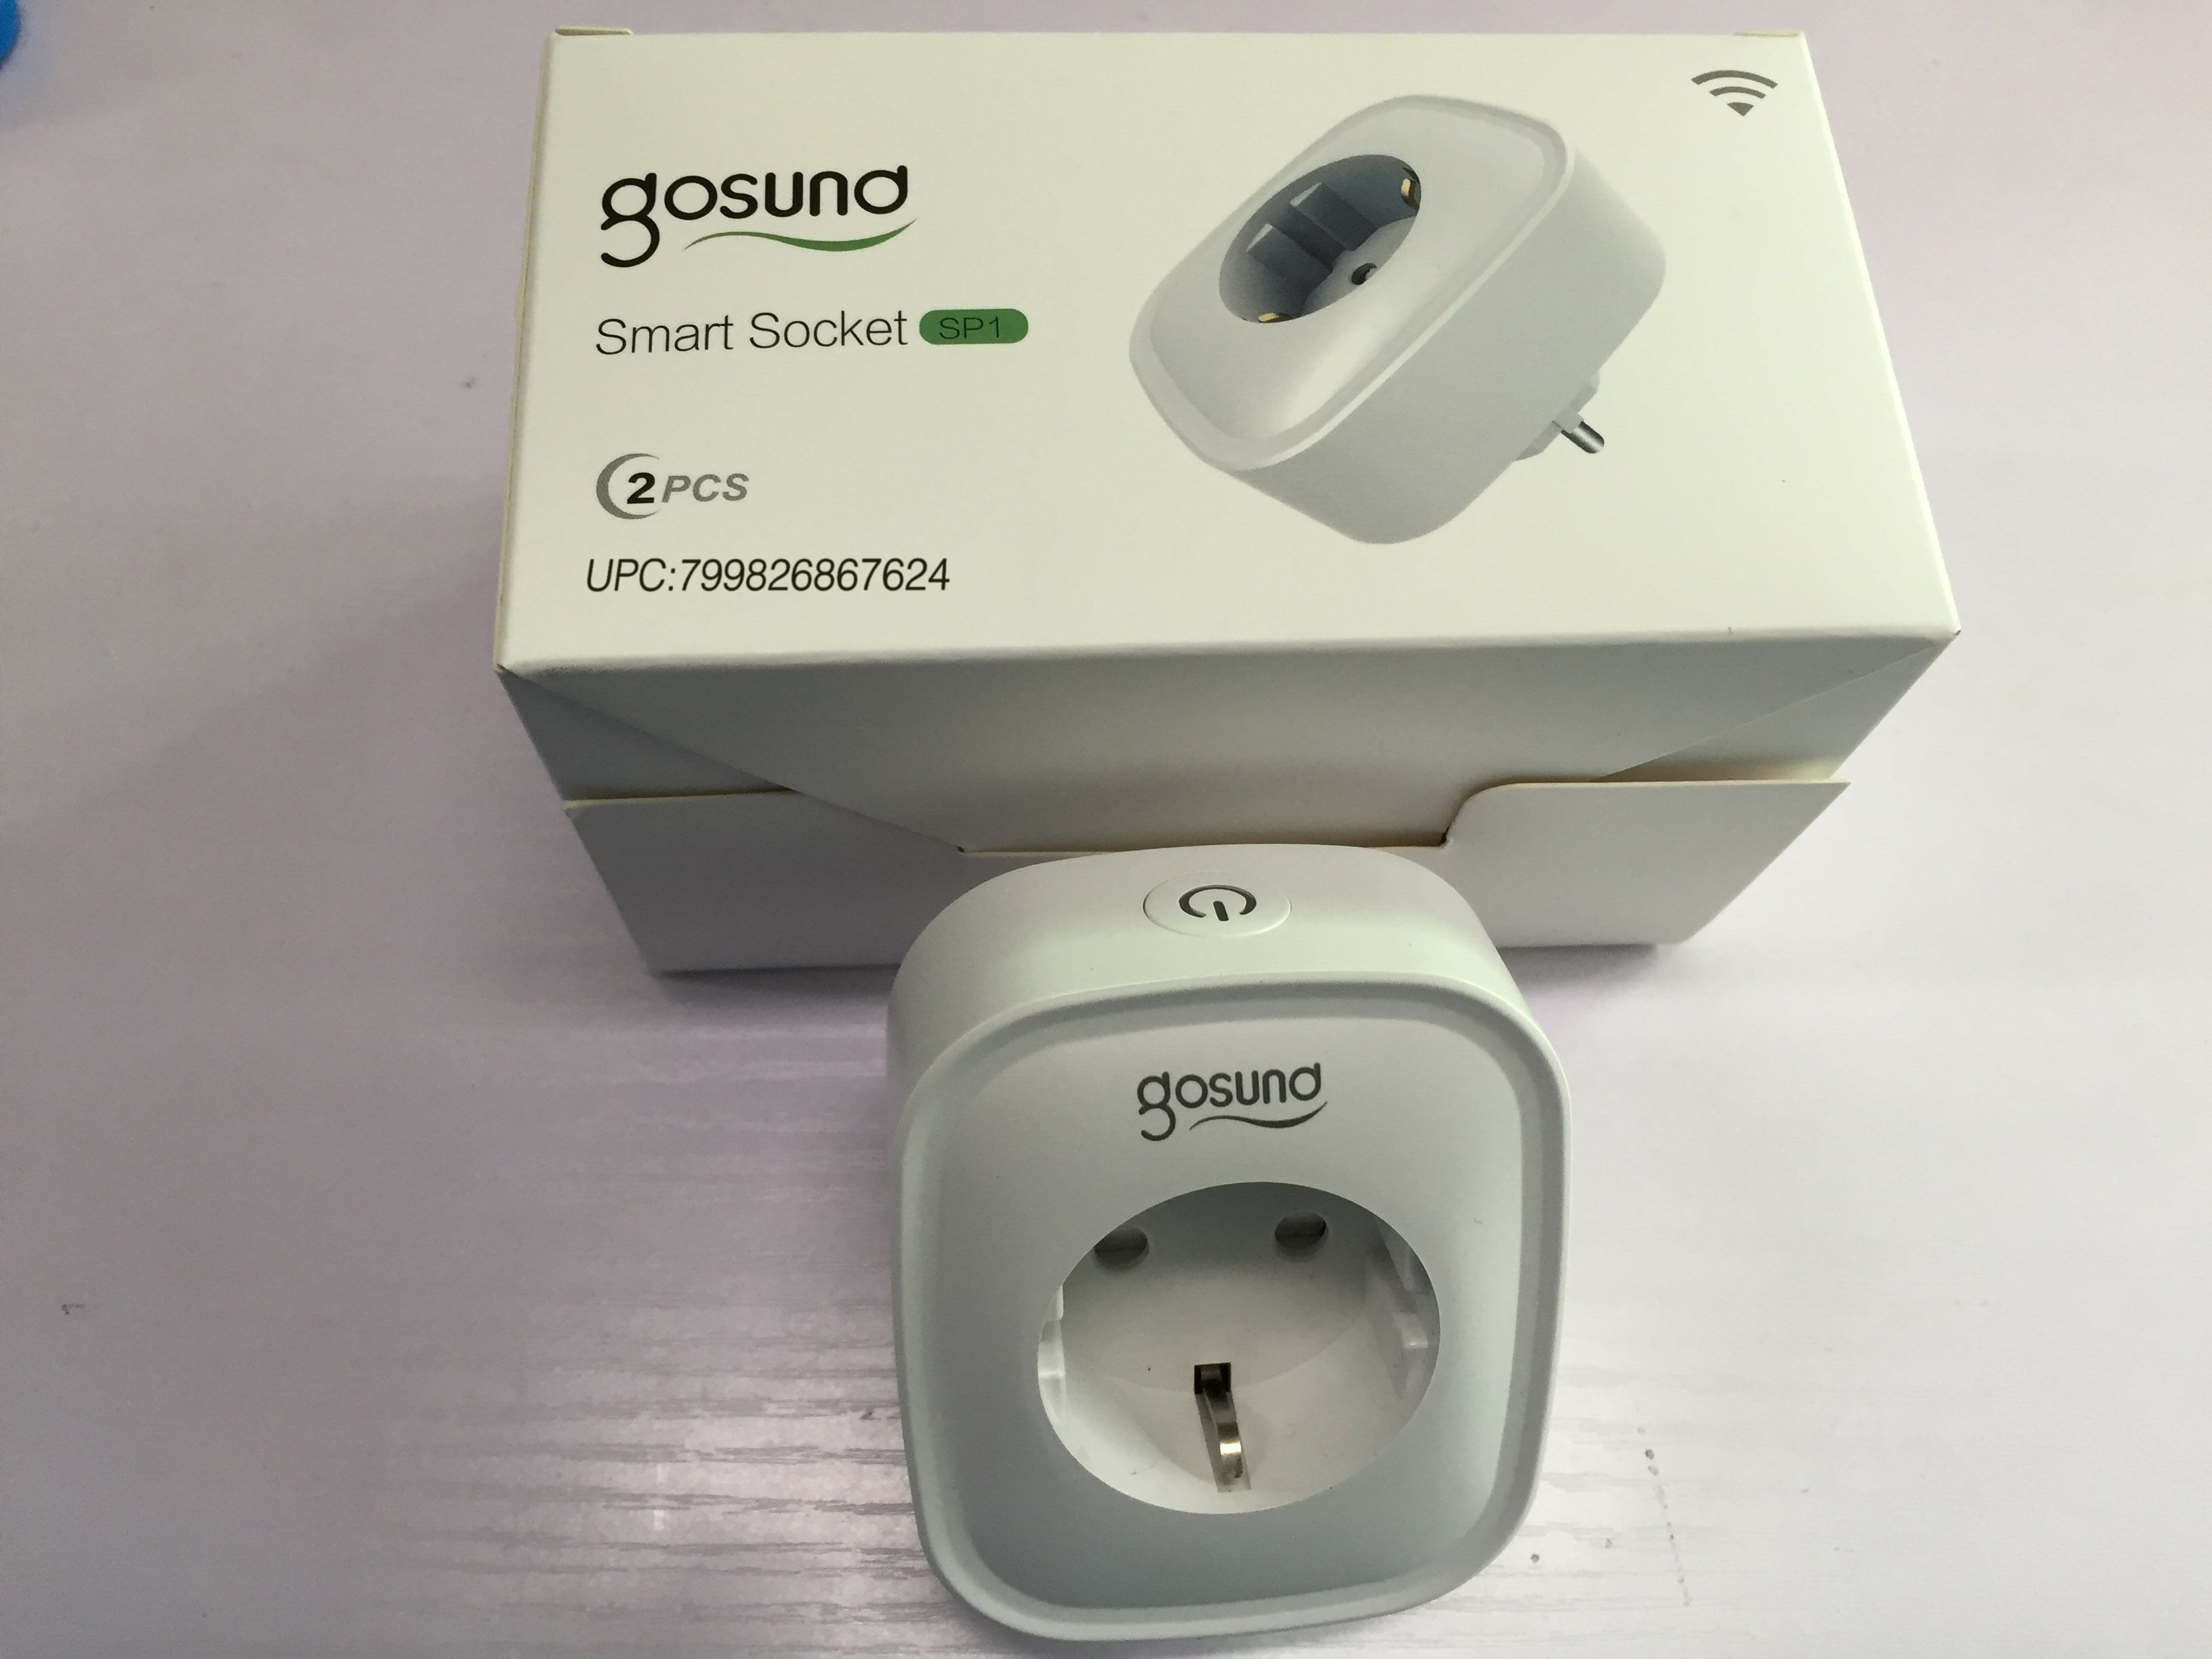 Wi-Fi Smart Plug SP111 (Only For Europe)